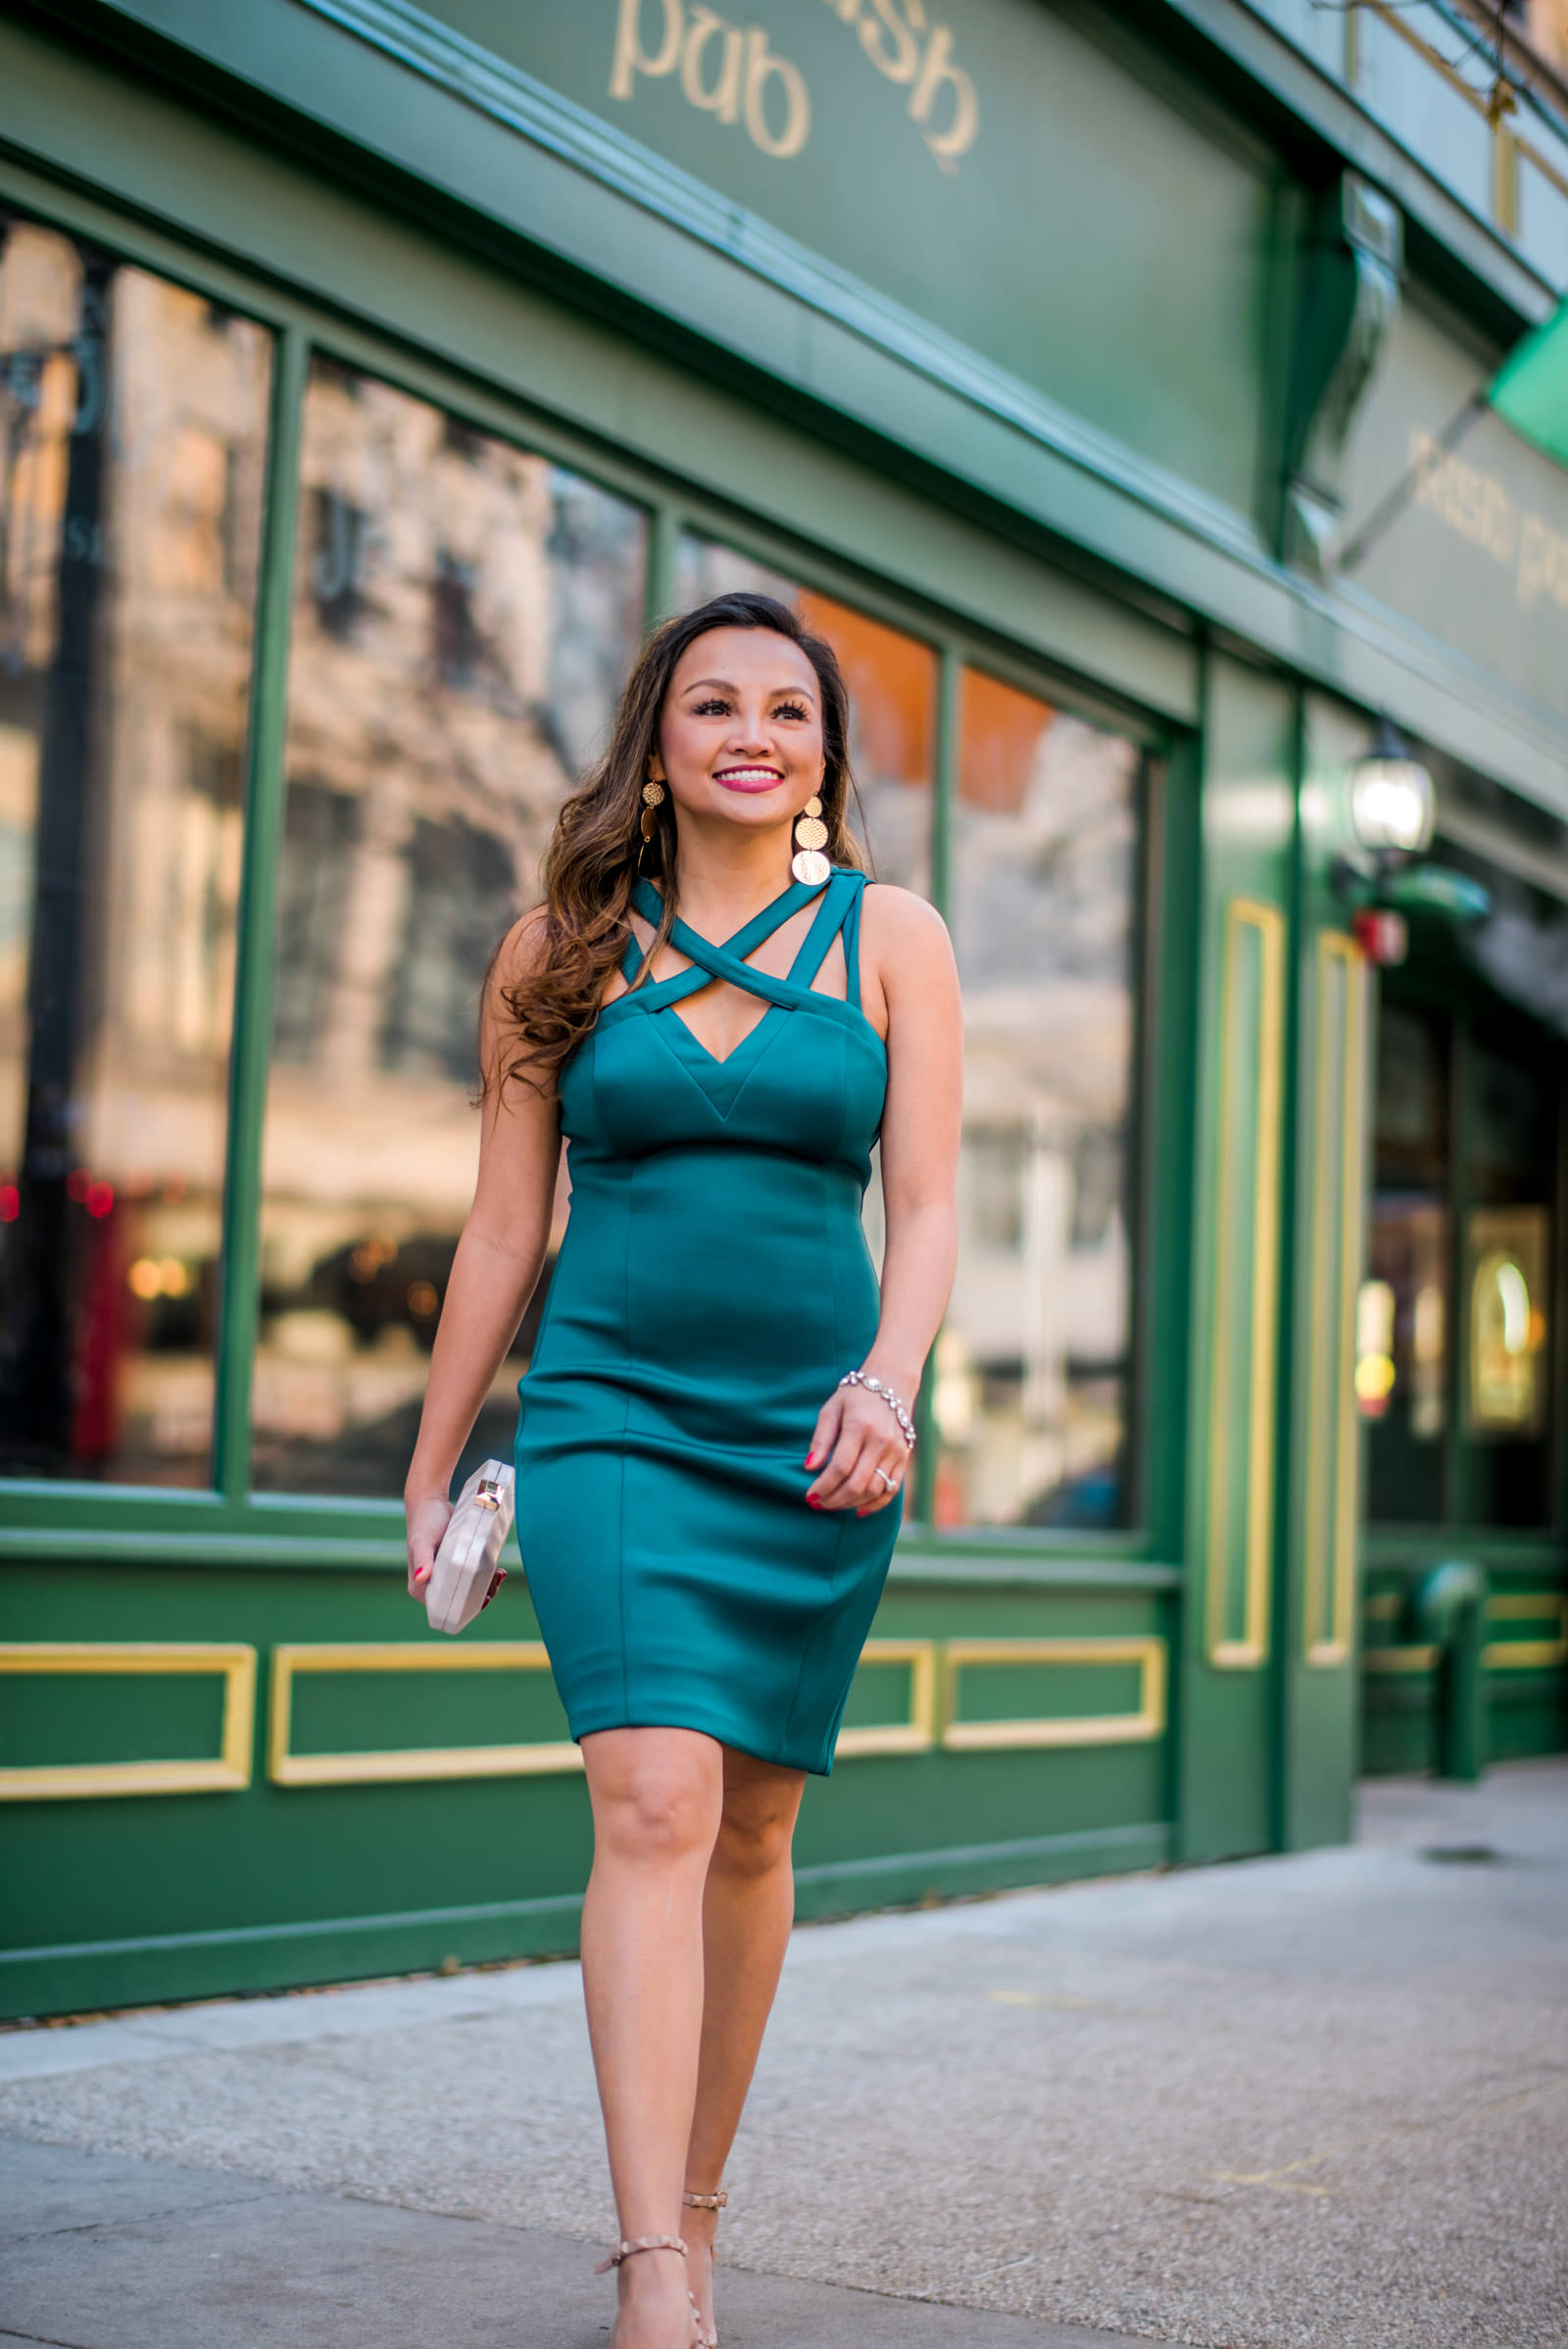 colors of mei, mei, milwaukee fashion blogger, milwaukee lifestyle blogger, mo's irish pub, guess dress, emerald dress, cocktail dress, green dress ideas, date night dress